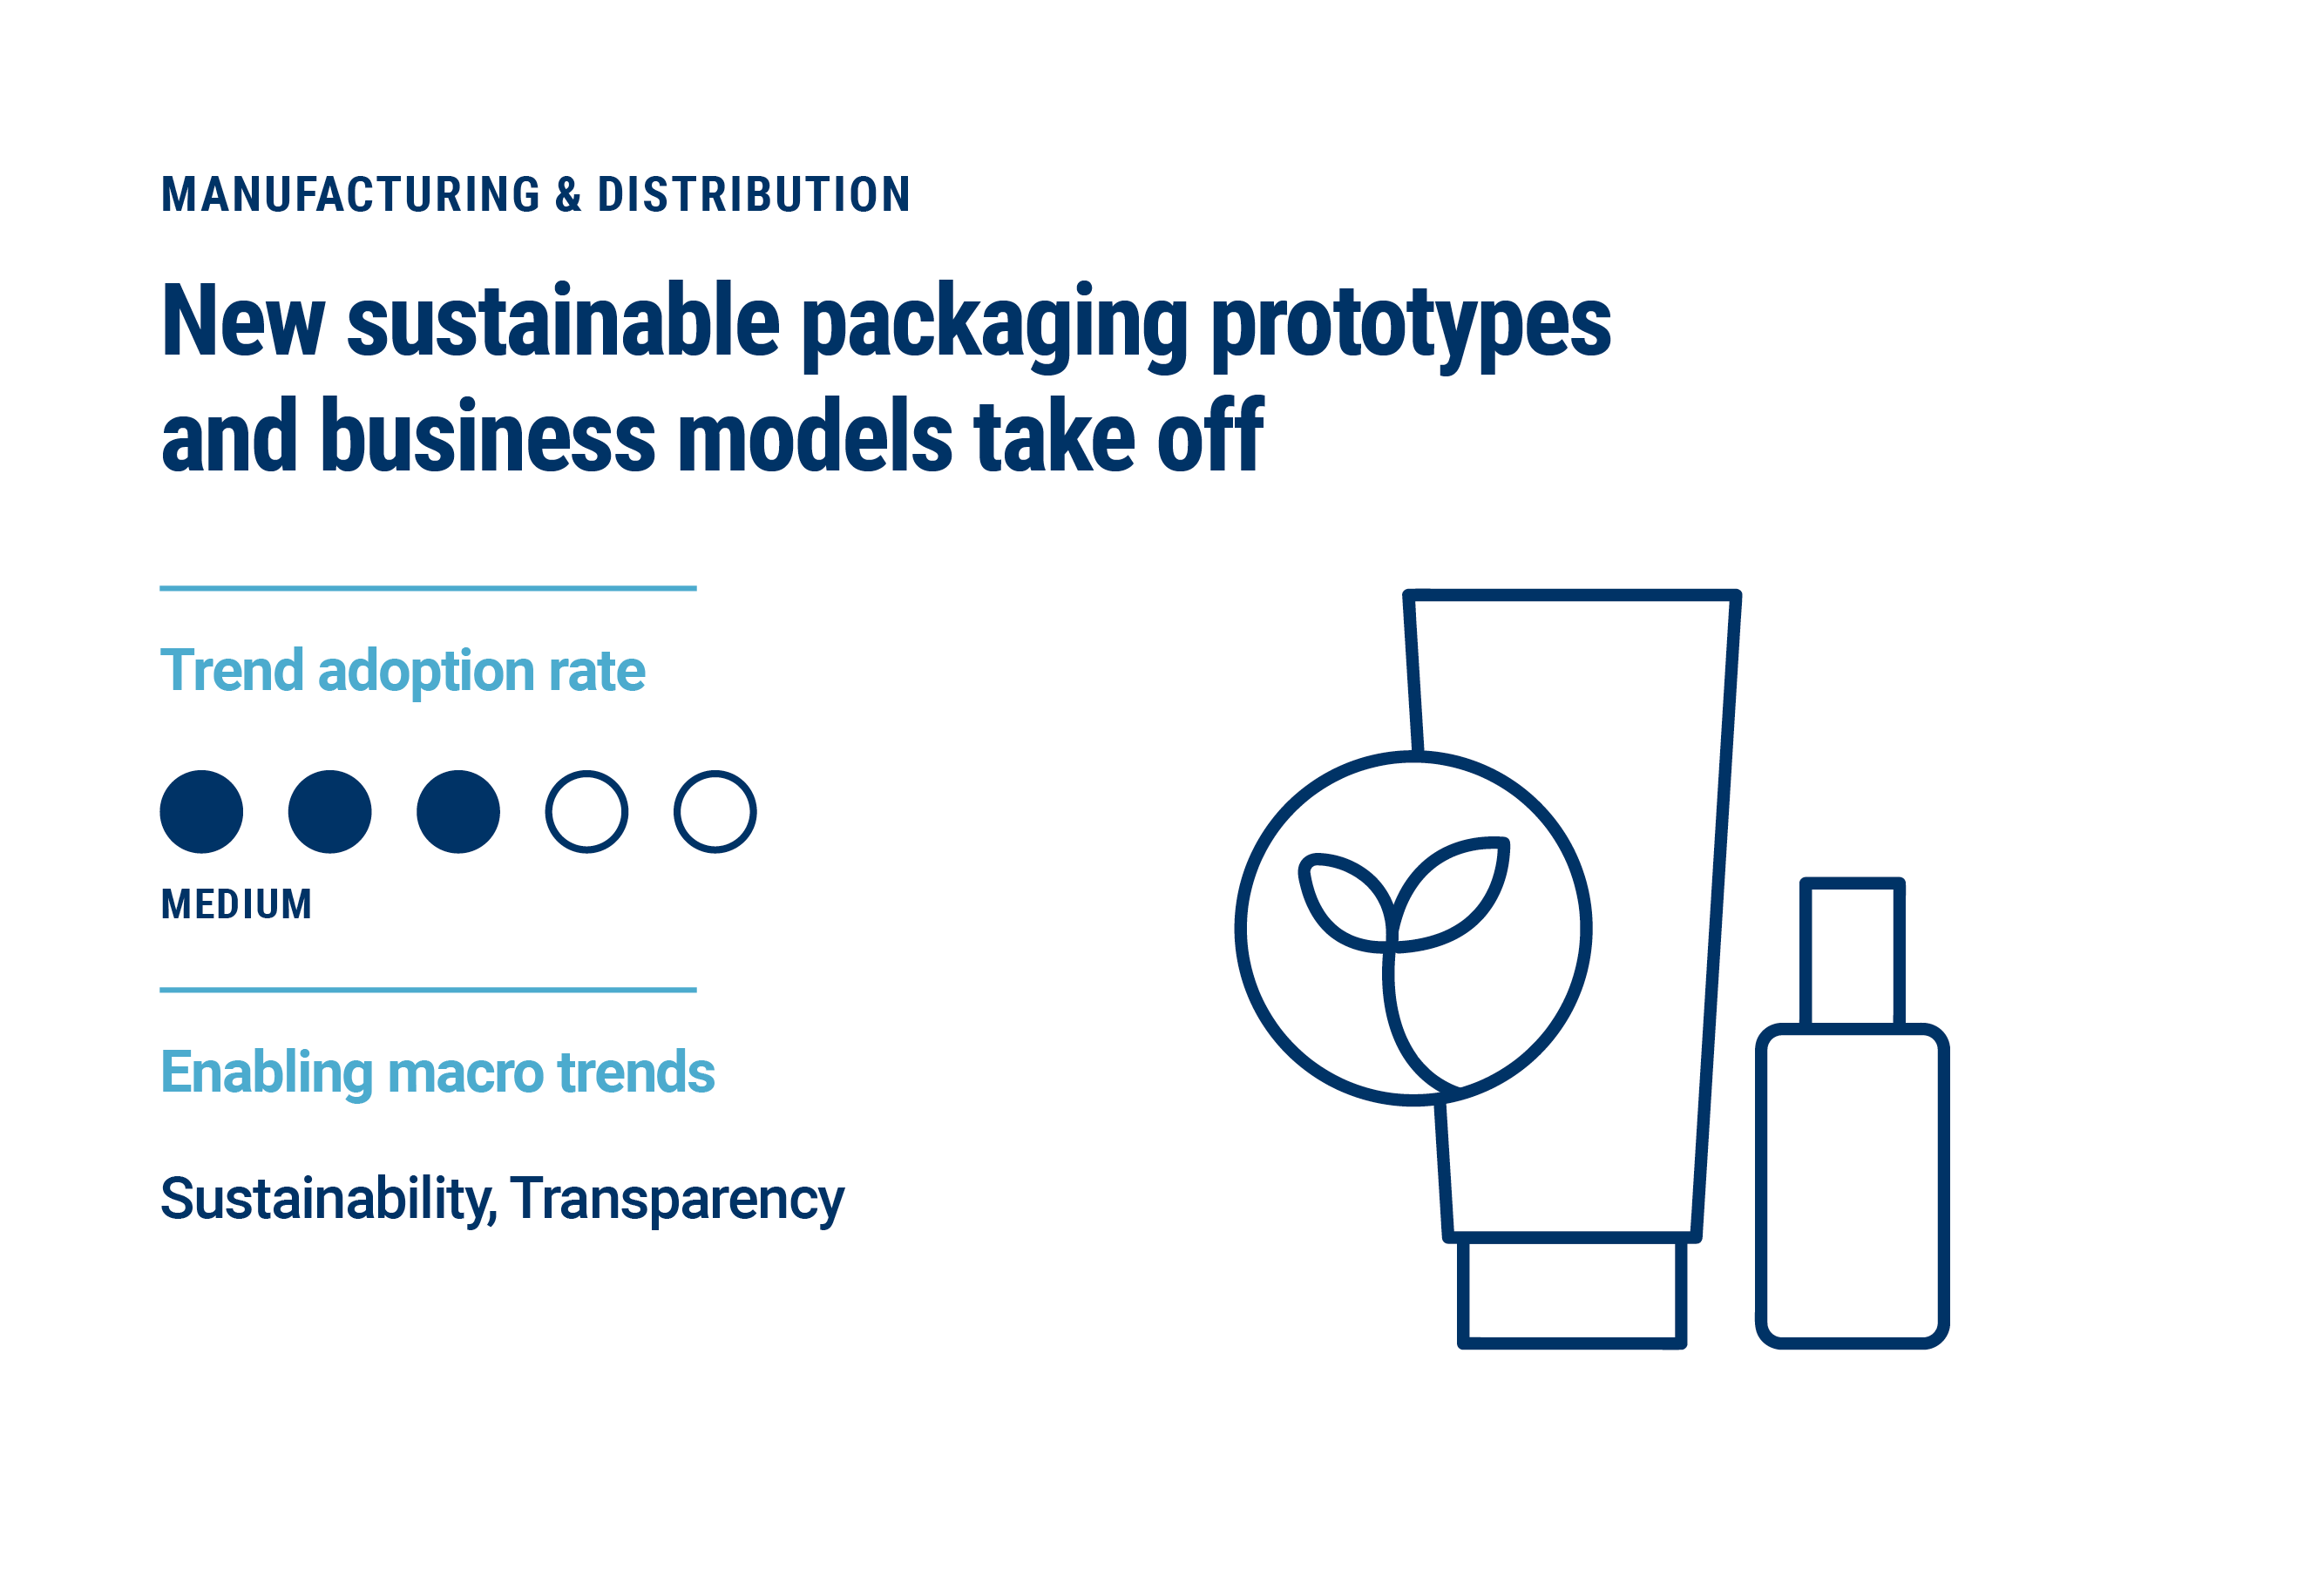 Graphic highlighting the beauty trend of new sustainable packaging prototypes and business models taking off.